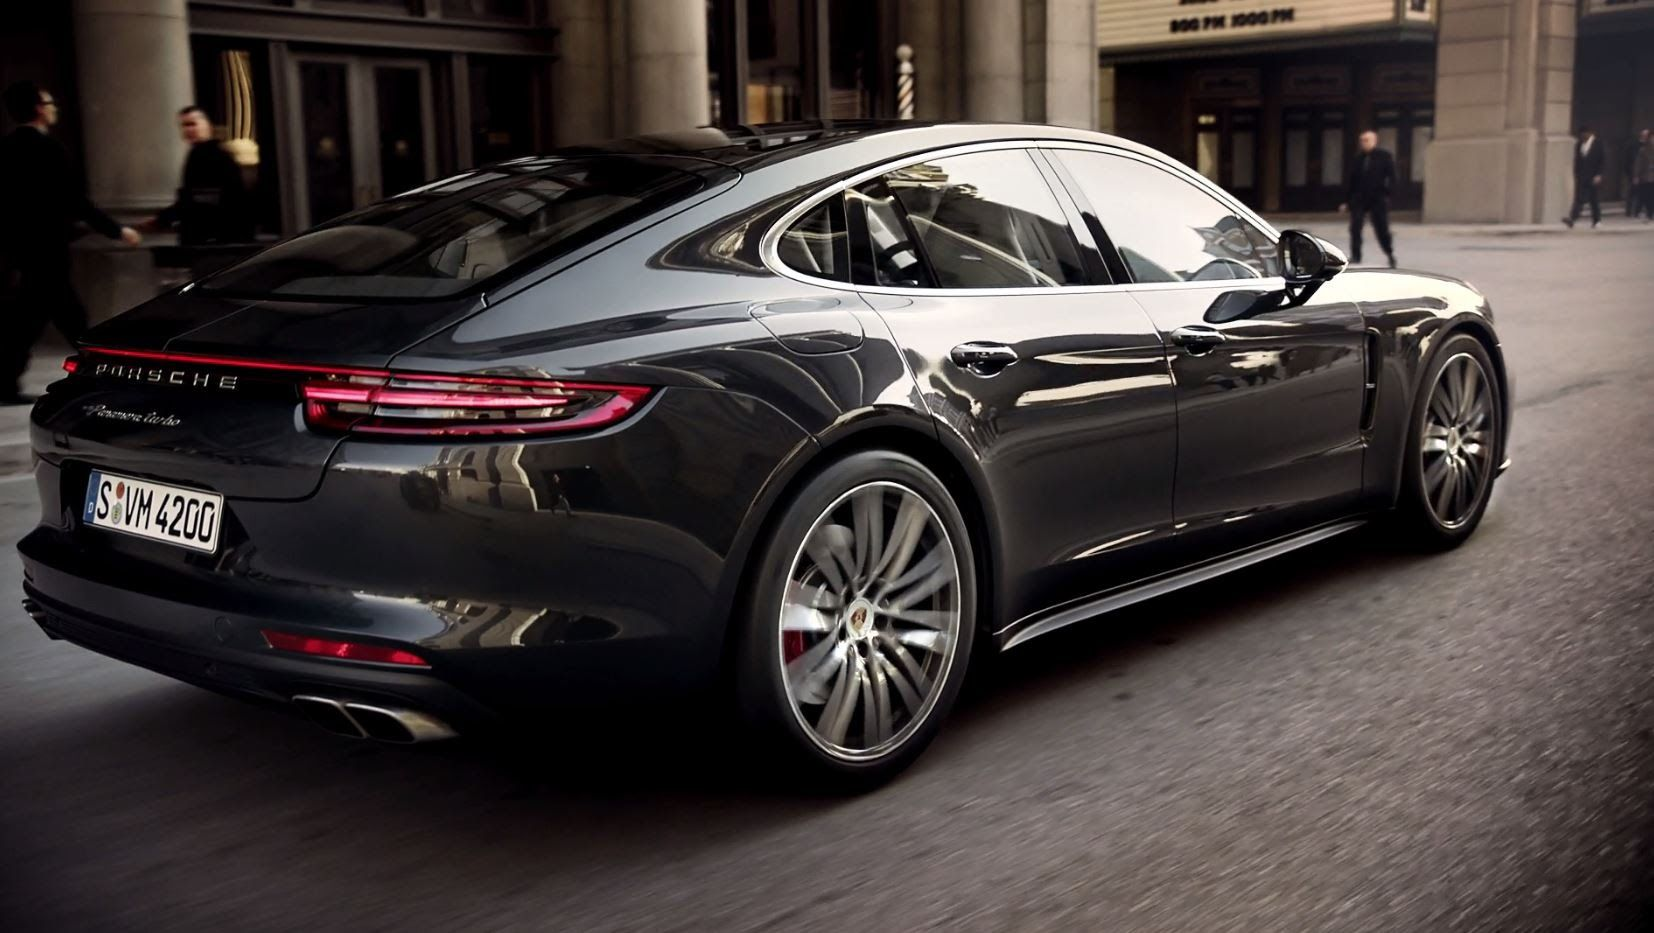 The New Panamera Turbo And 4s In Motion